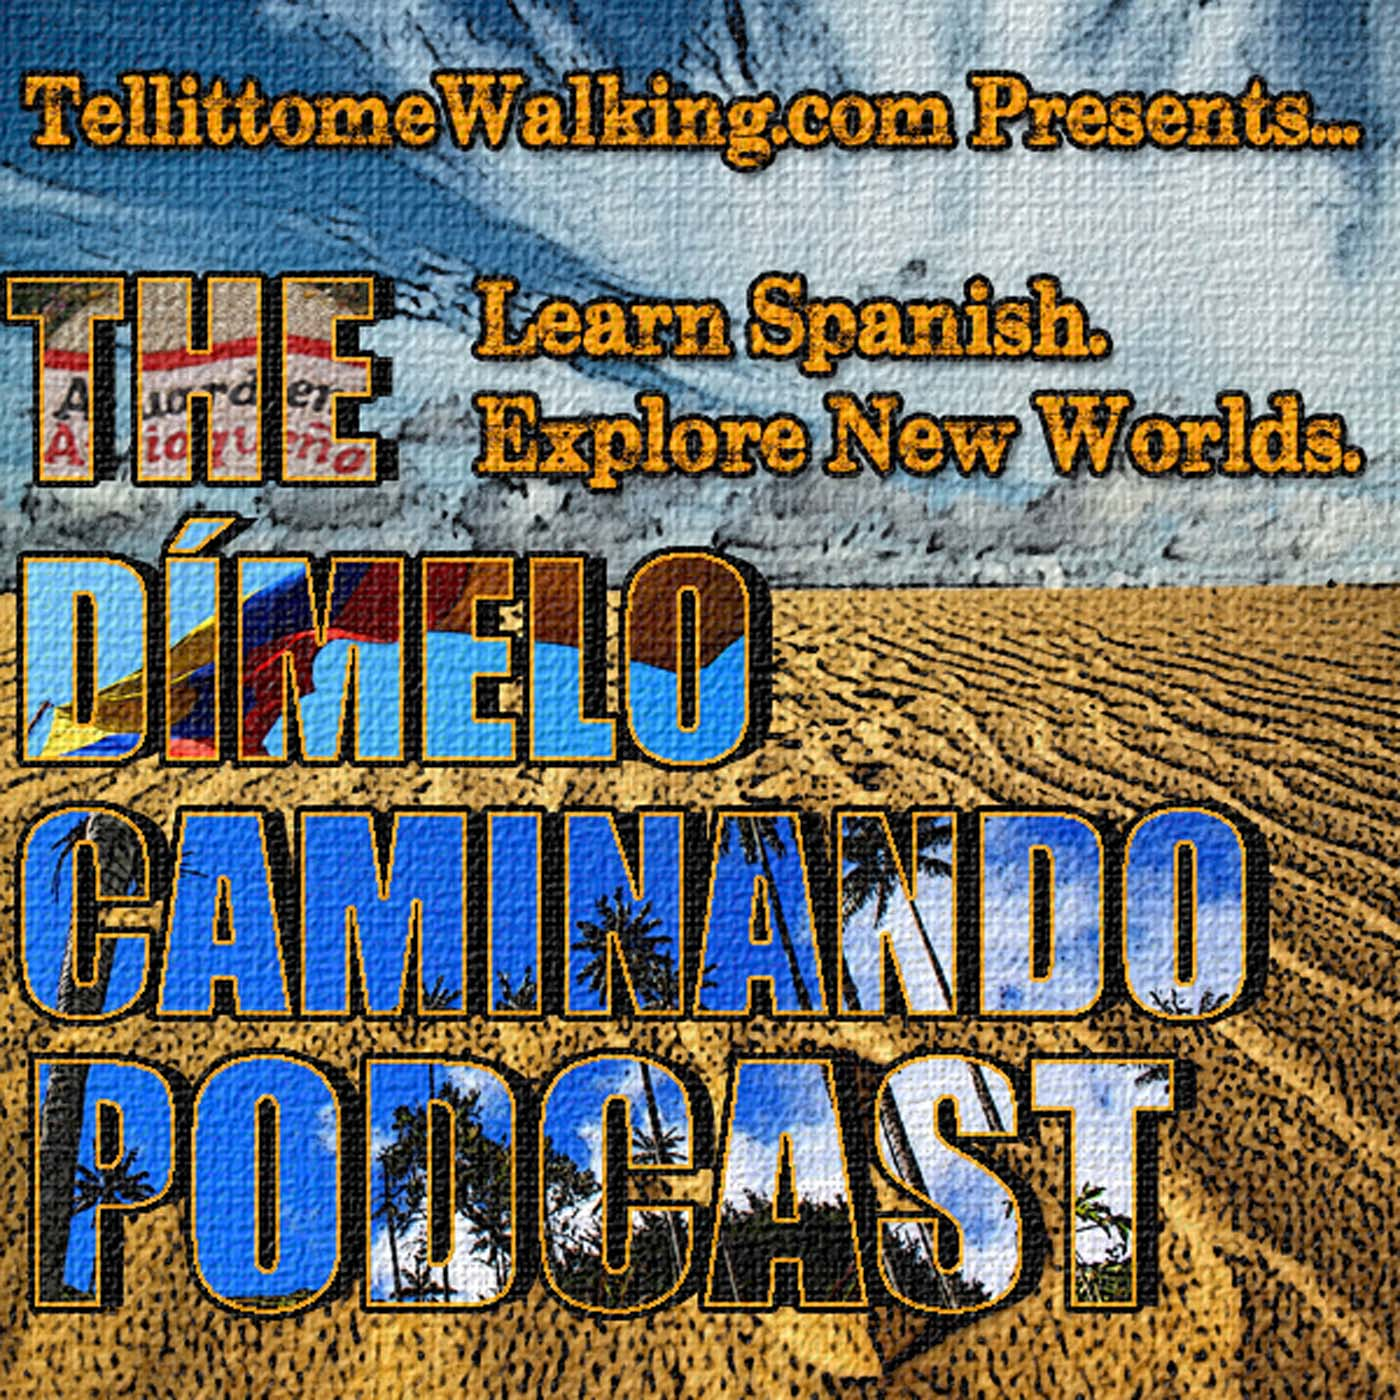 Dímelo Caminando Spanish Podcast: Travel Latin America⎮Learn Spanish⎮ Explore New Worlds